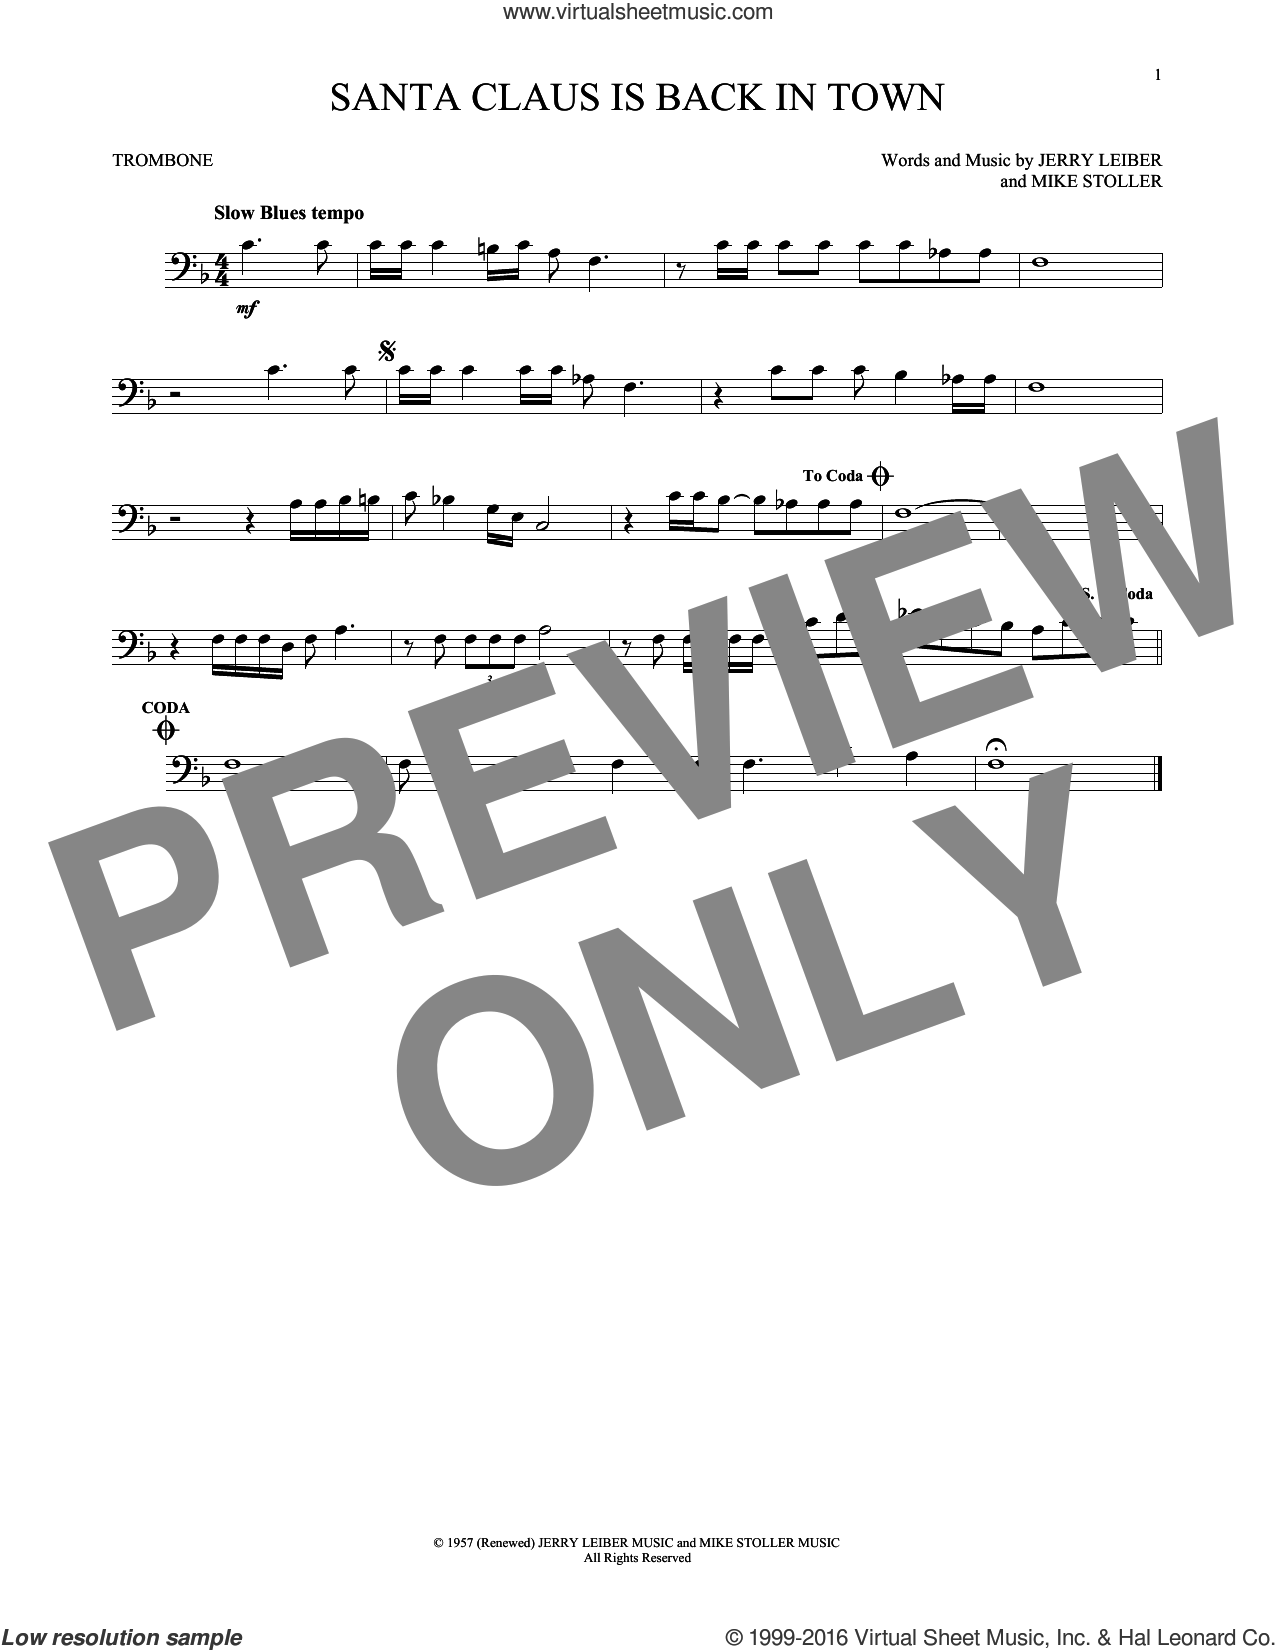 Santa Claus Is Back In Town sheet music for trombone solo by Elvis Presley, Jerry Leiber and Mike Stoller, intermediate skill level